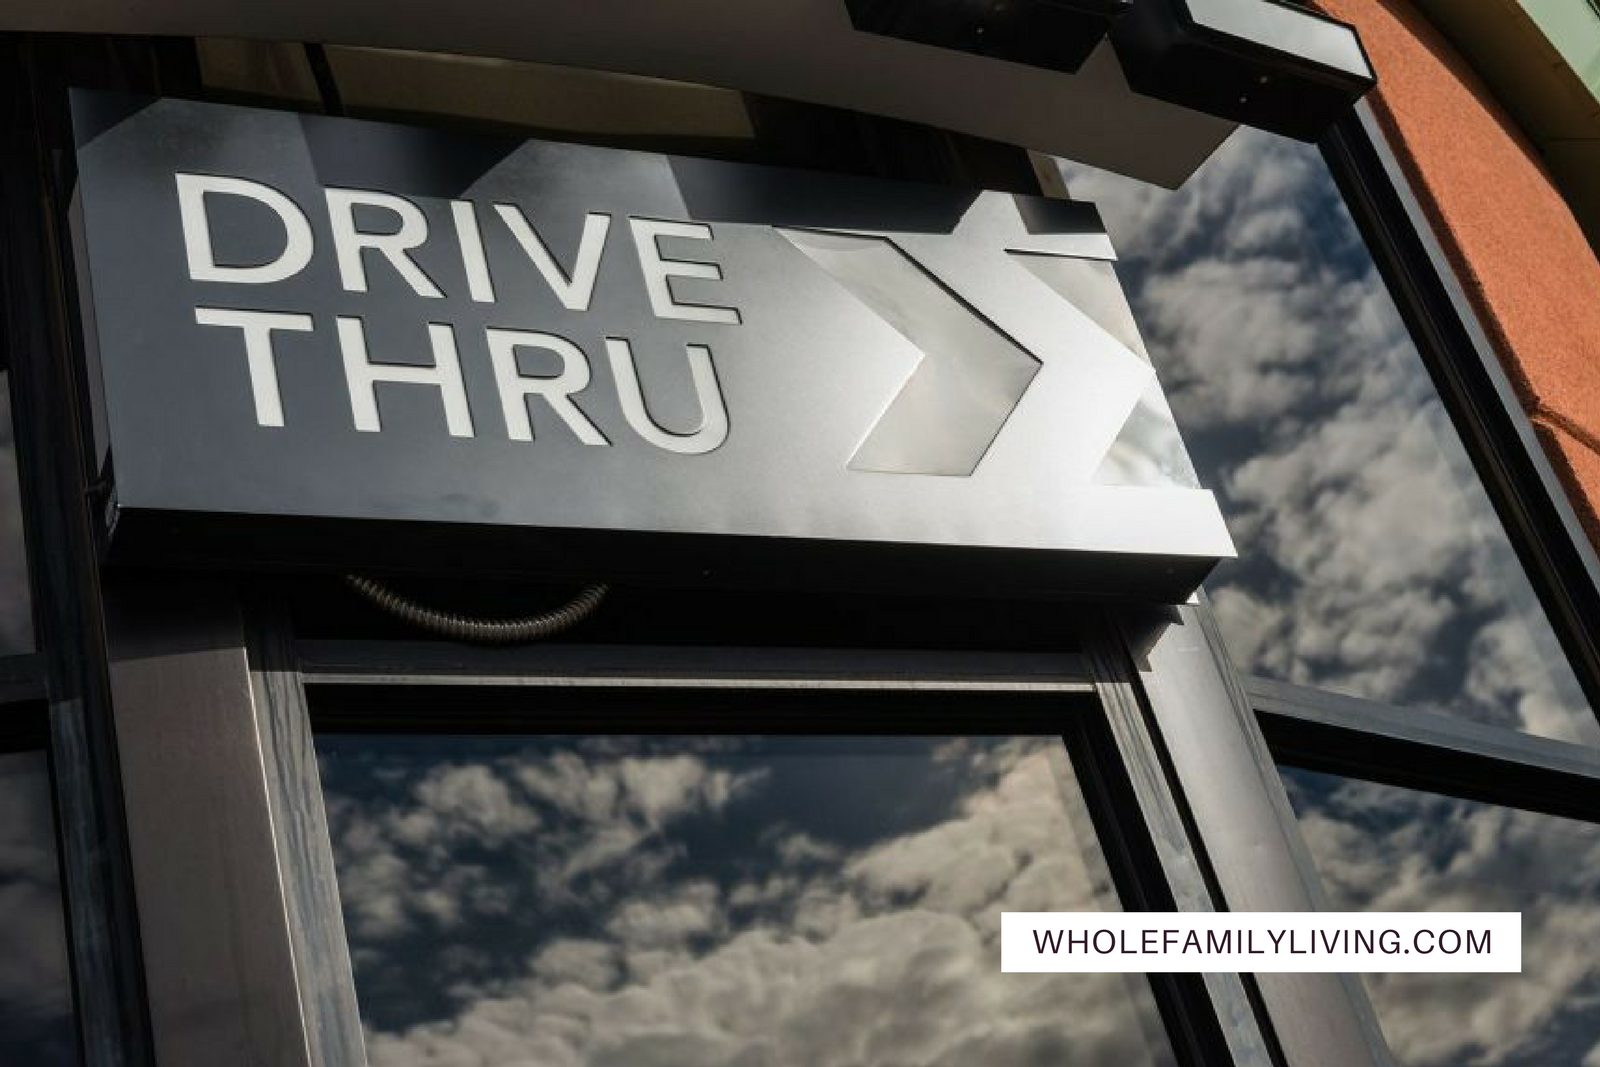 WFL Blog Post How to avoid the drive thru when you're on the go and starving